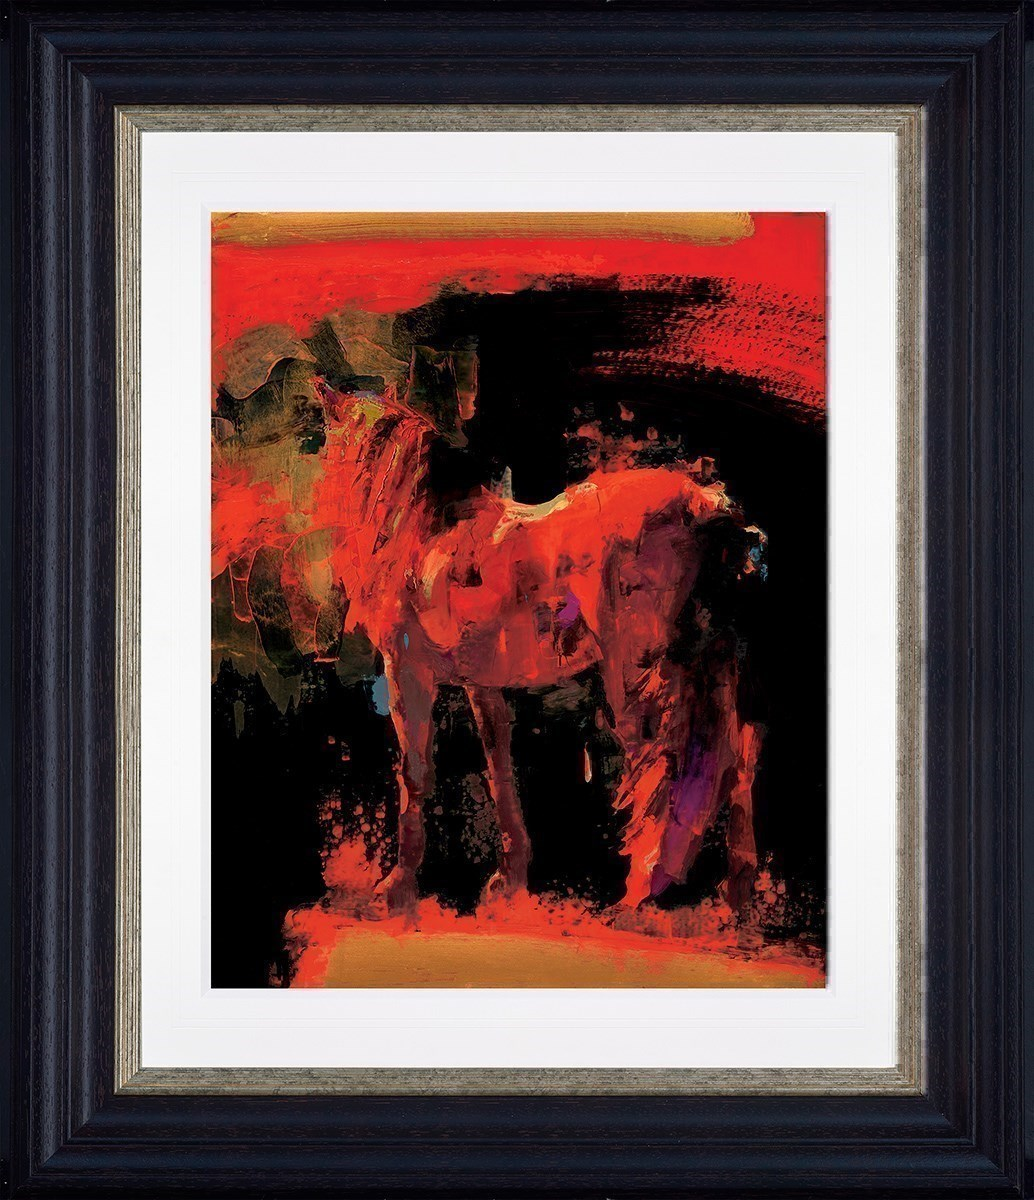 Newton Series II Red's B  by Christian Hook - Limited Edition on Paper sized 20x25 inches. Available from Whitewall Galleries